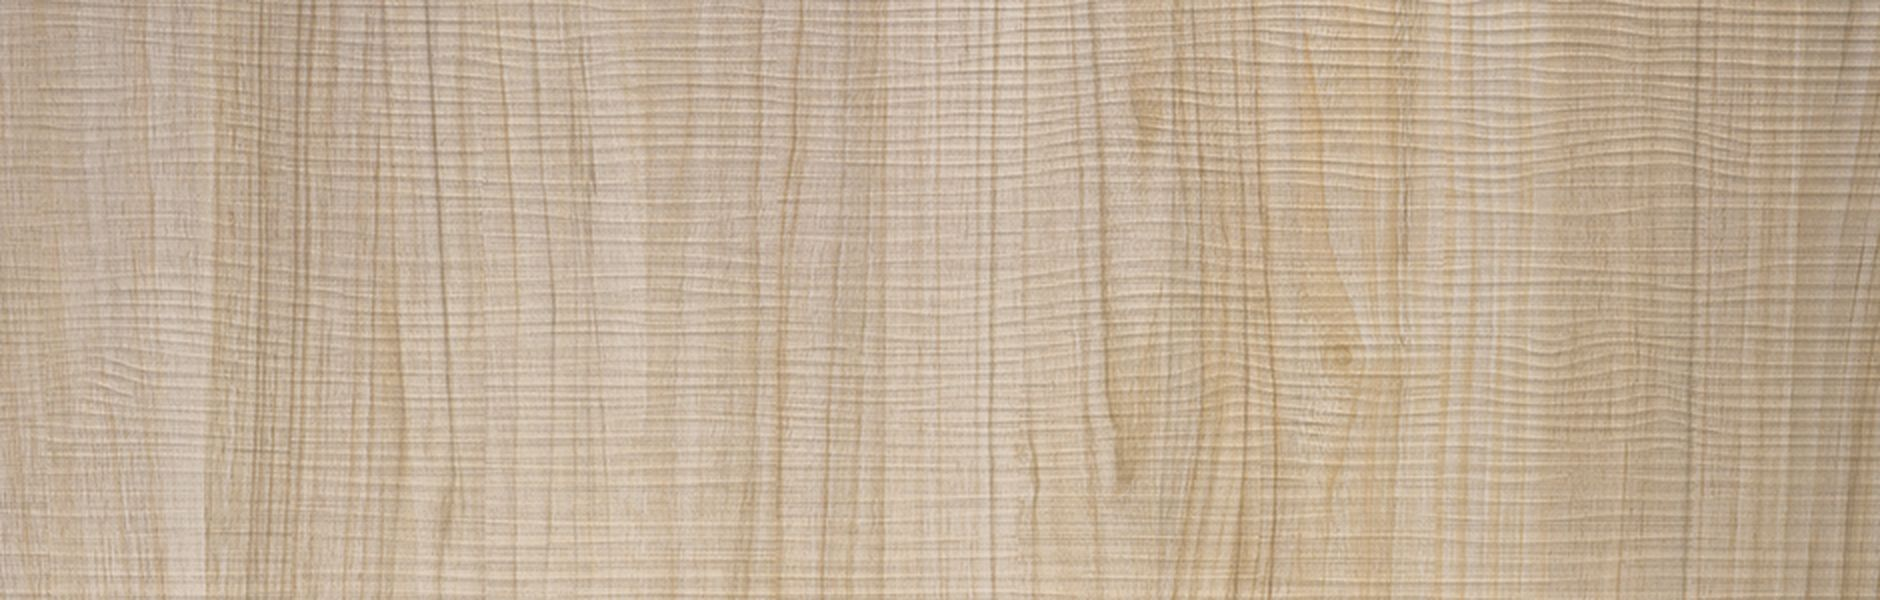 Фото 2 - Декоративные панели Sibu Woodline maple